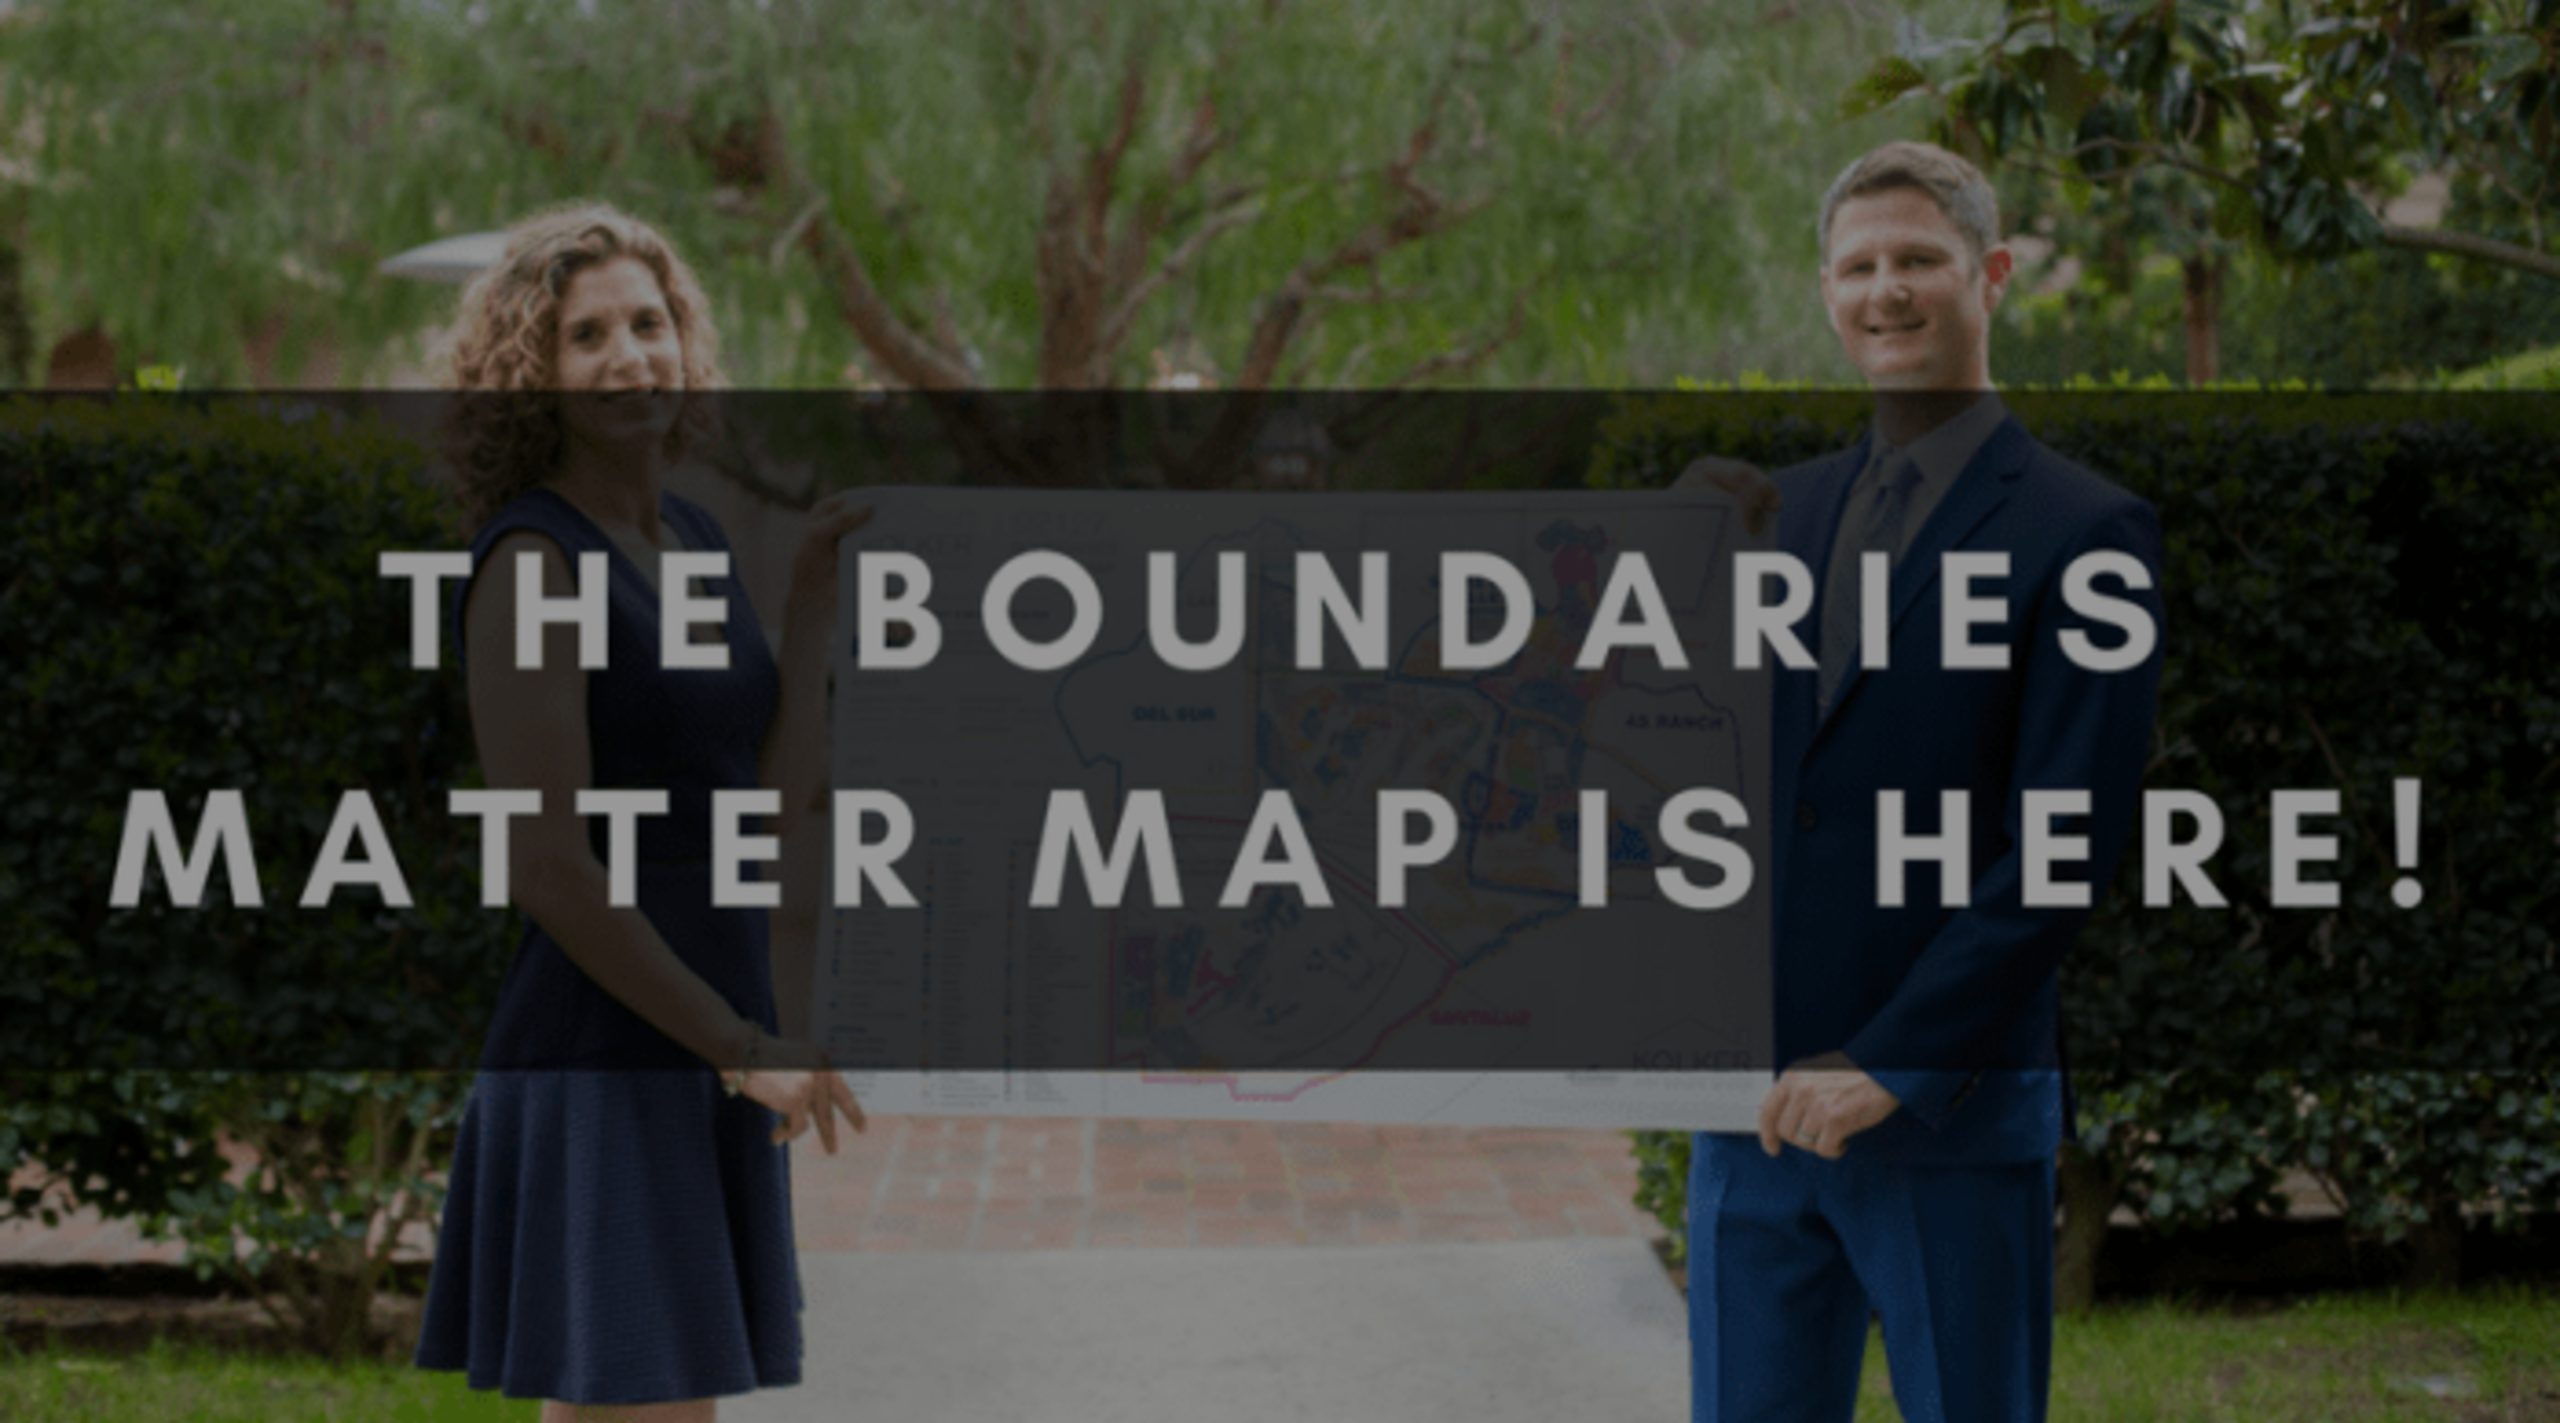 THE BOUNDARIES MATTER MAP IS HERE!